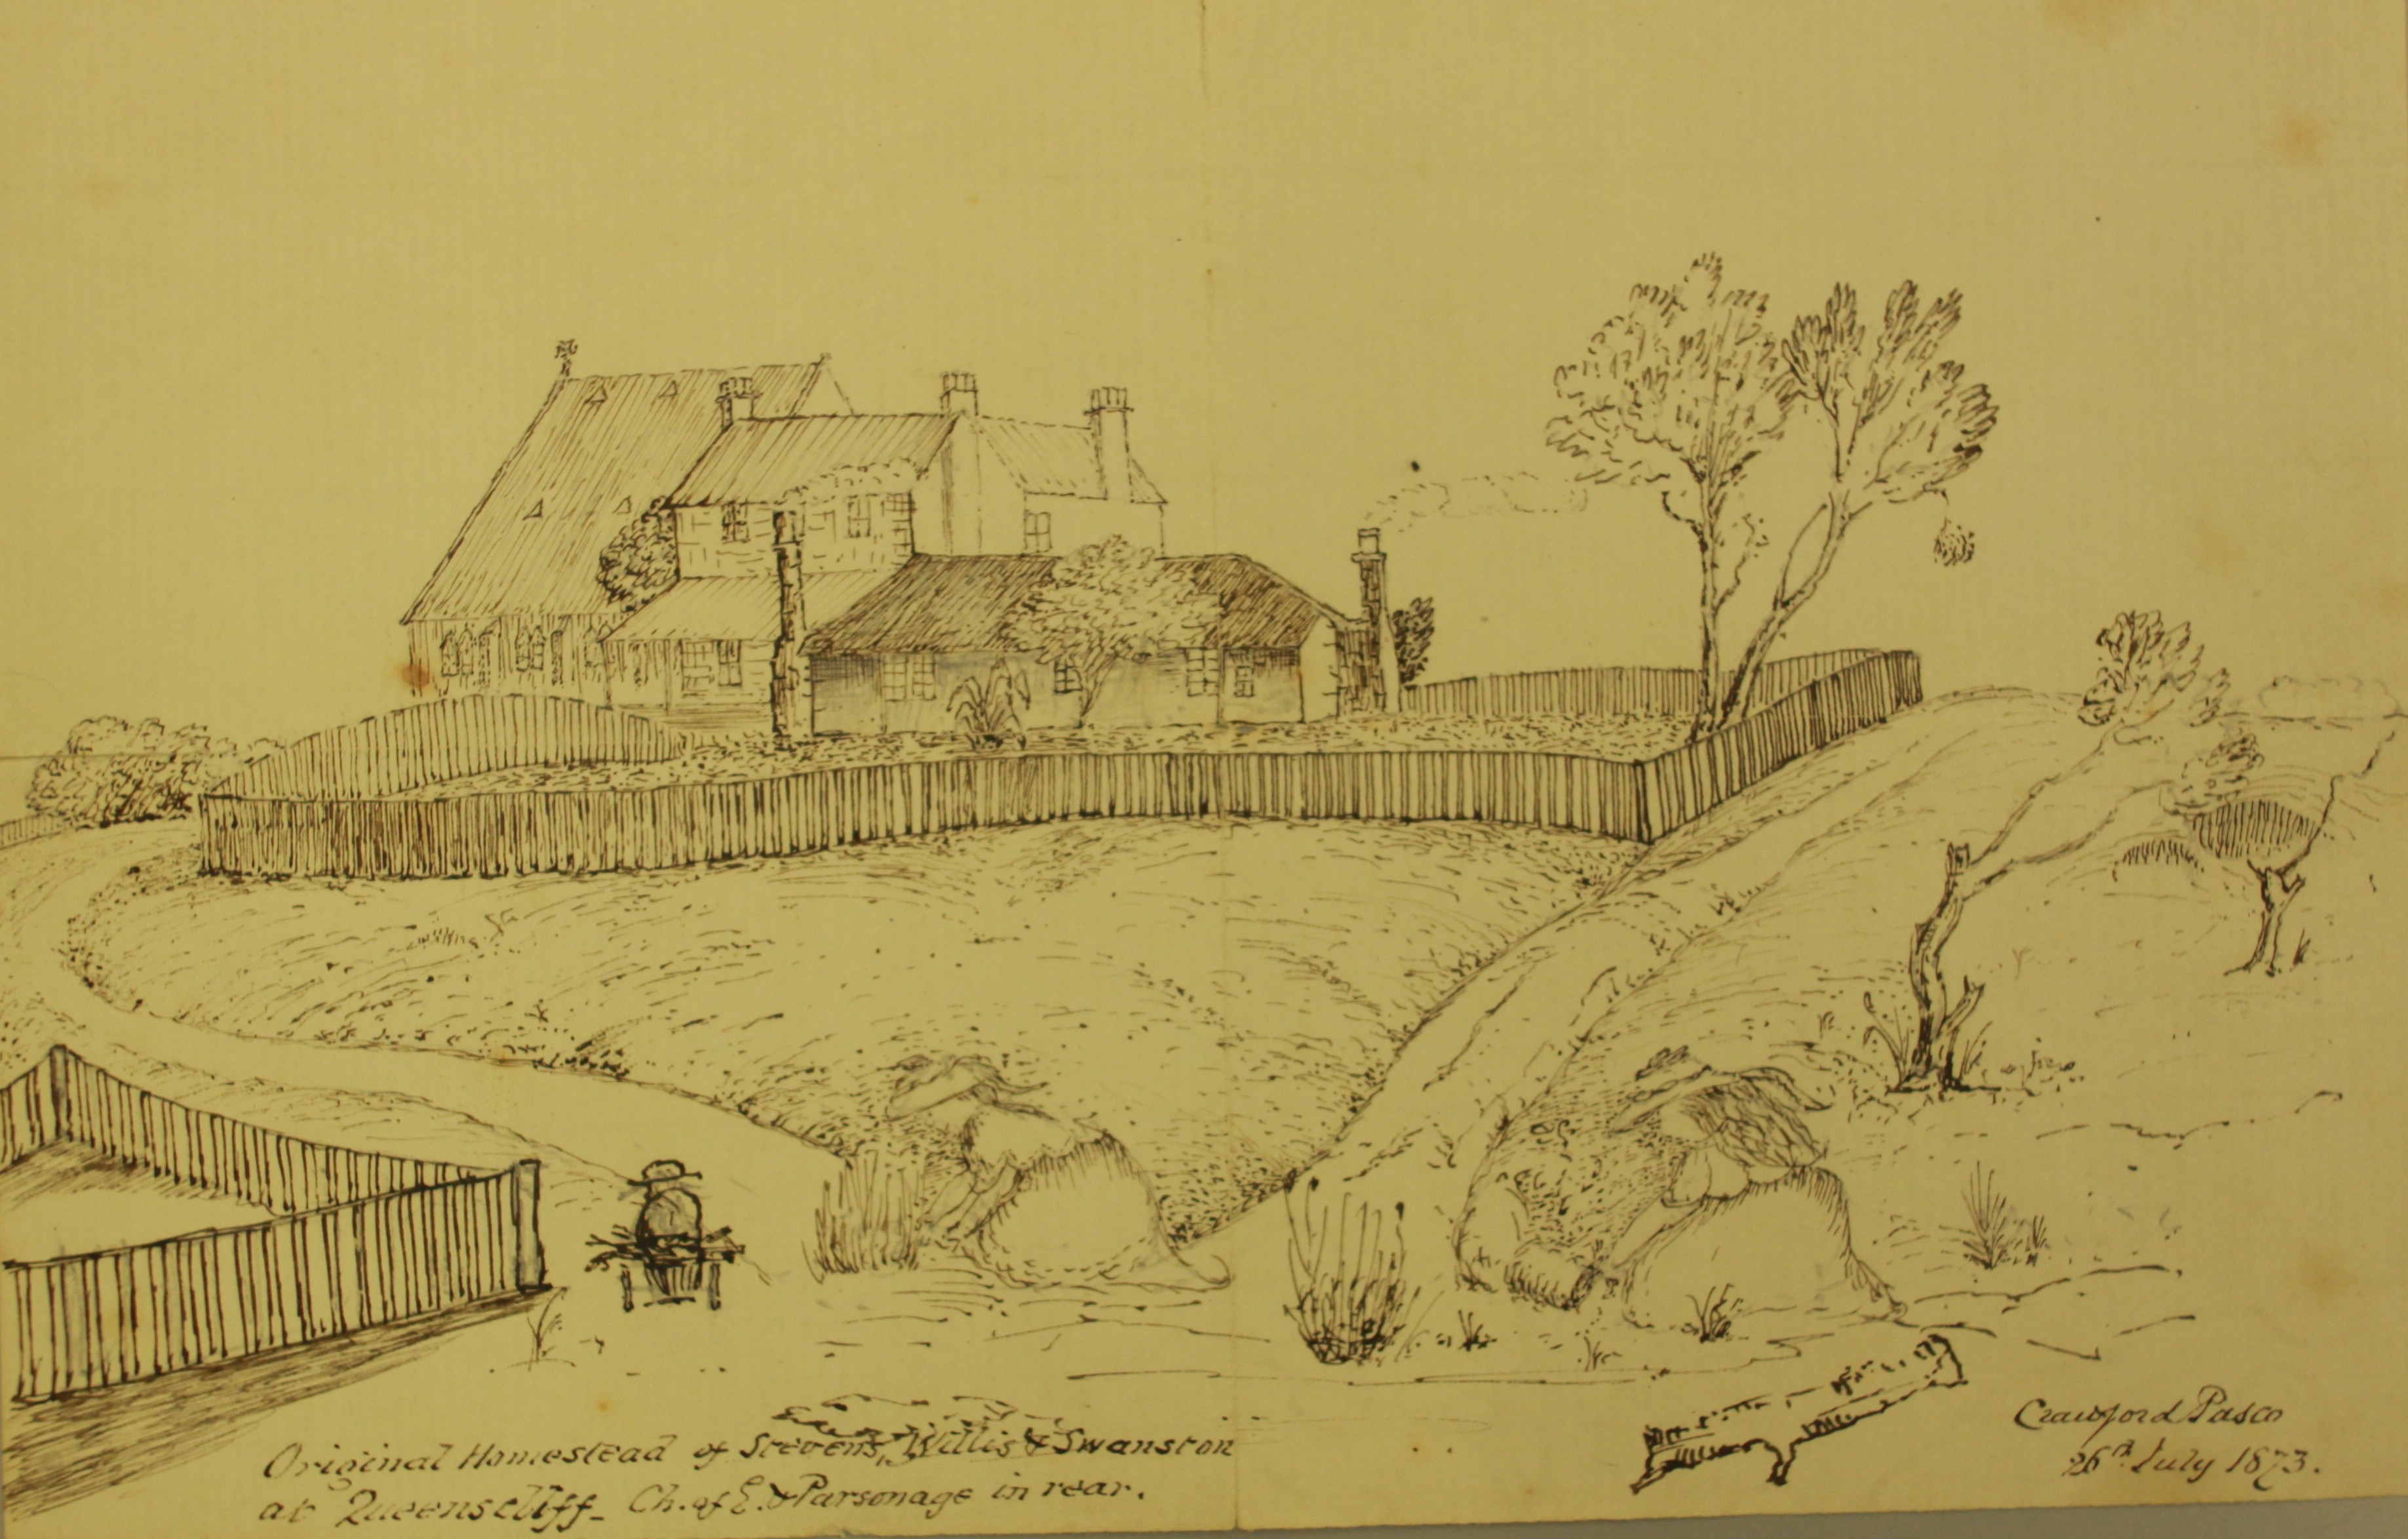 sketch of house with fencing and shrubbery